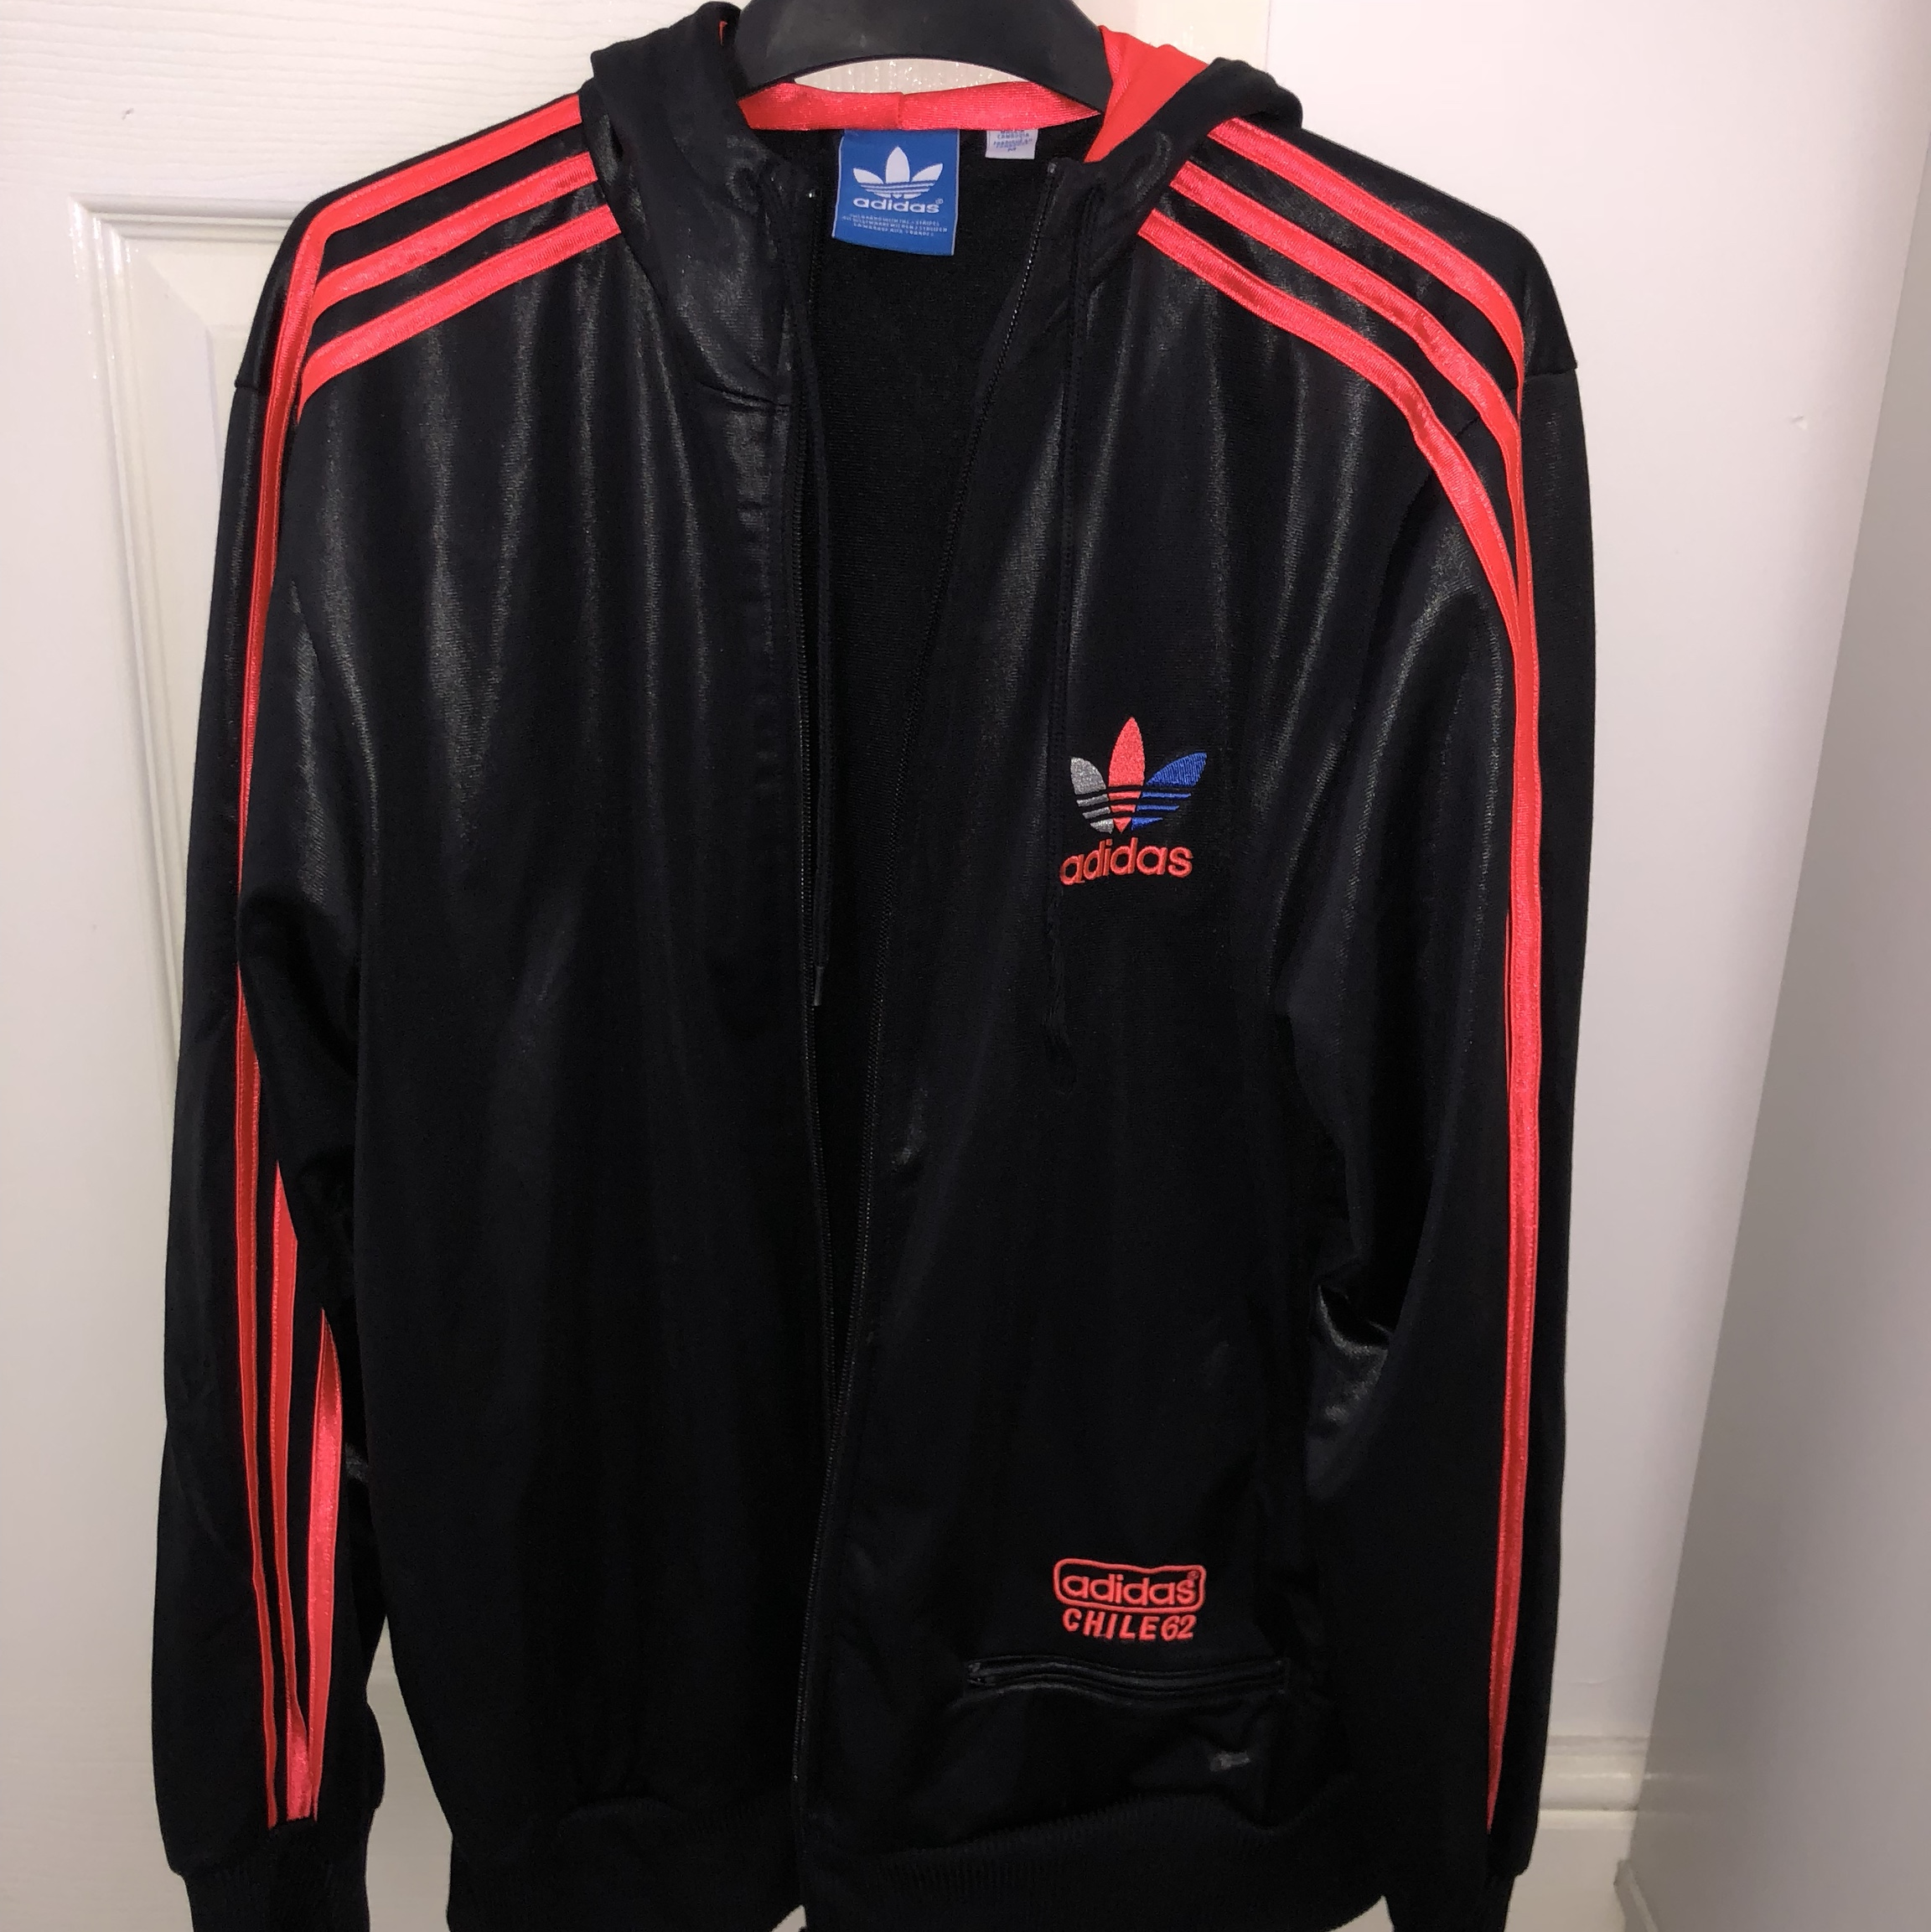 Jacket Adidas In Often 62 Worn Chile LargeNot OXwPnk80